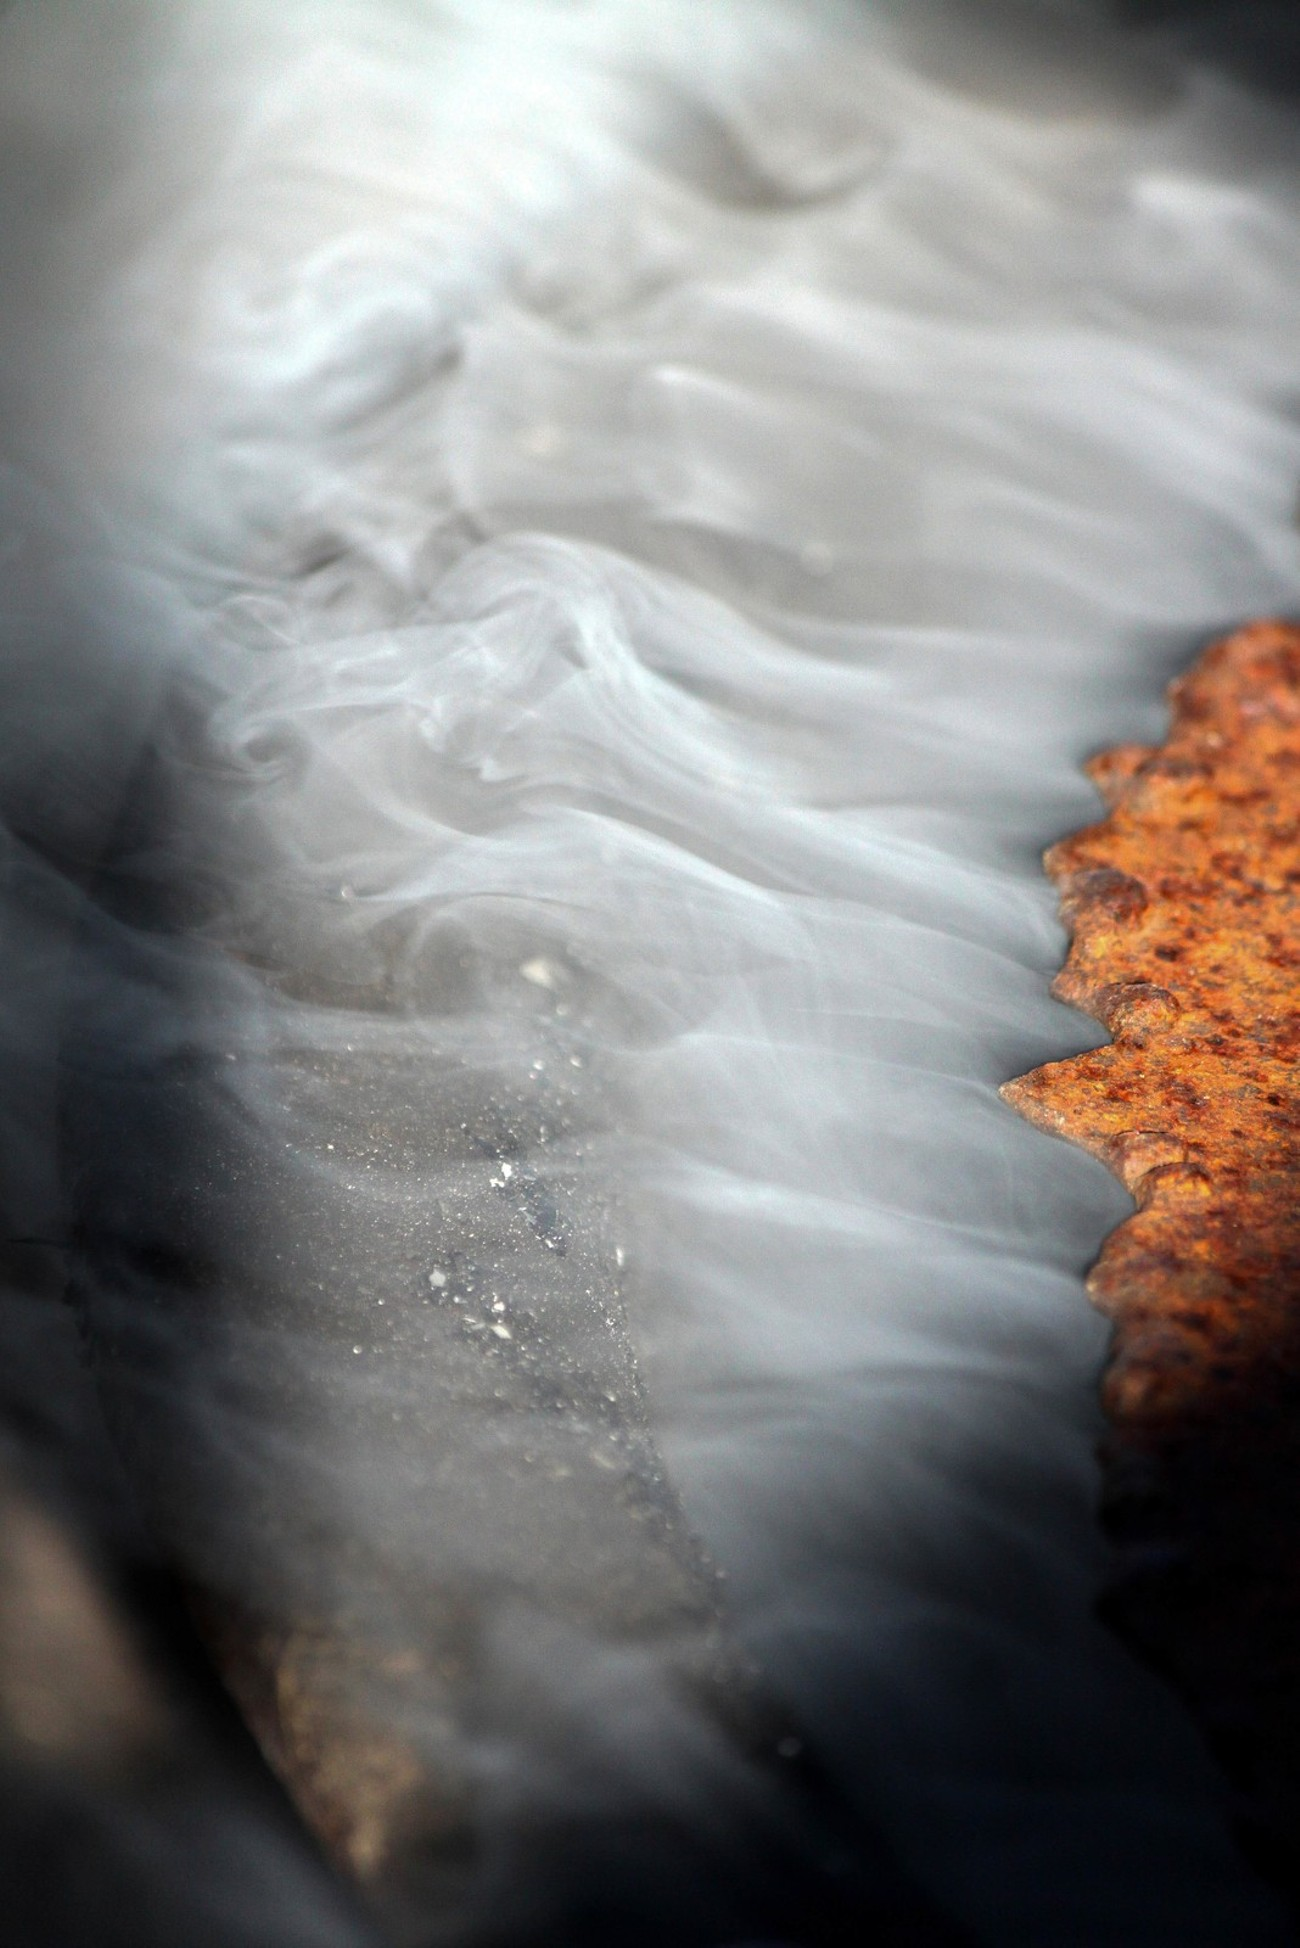 When I saw the smoke escaping from our bonfire pit, I knew I had to get a picture of it. The lid wasn't completely covering the pit so the smoke was billowing out in ripples.